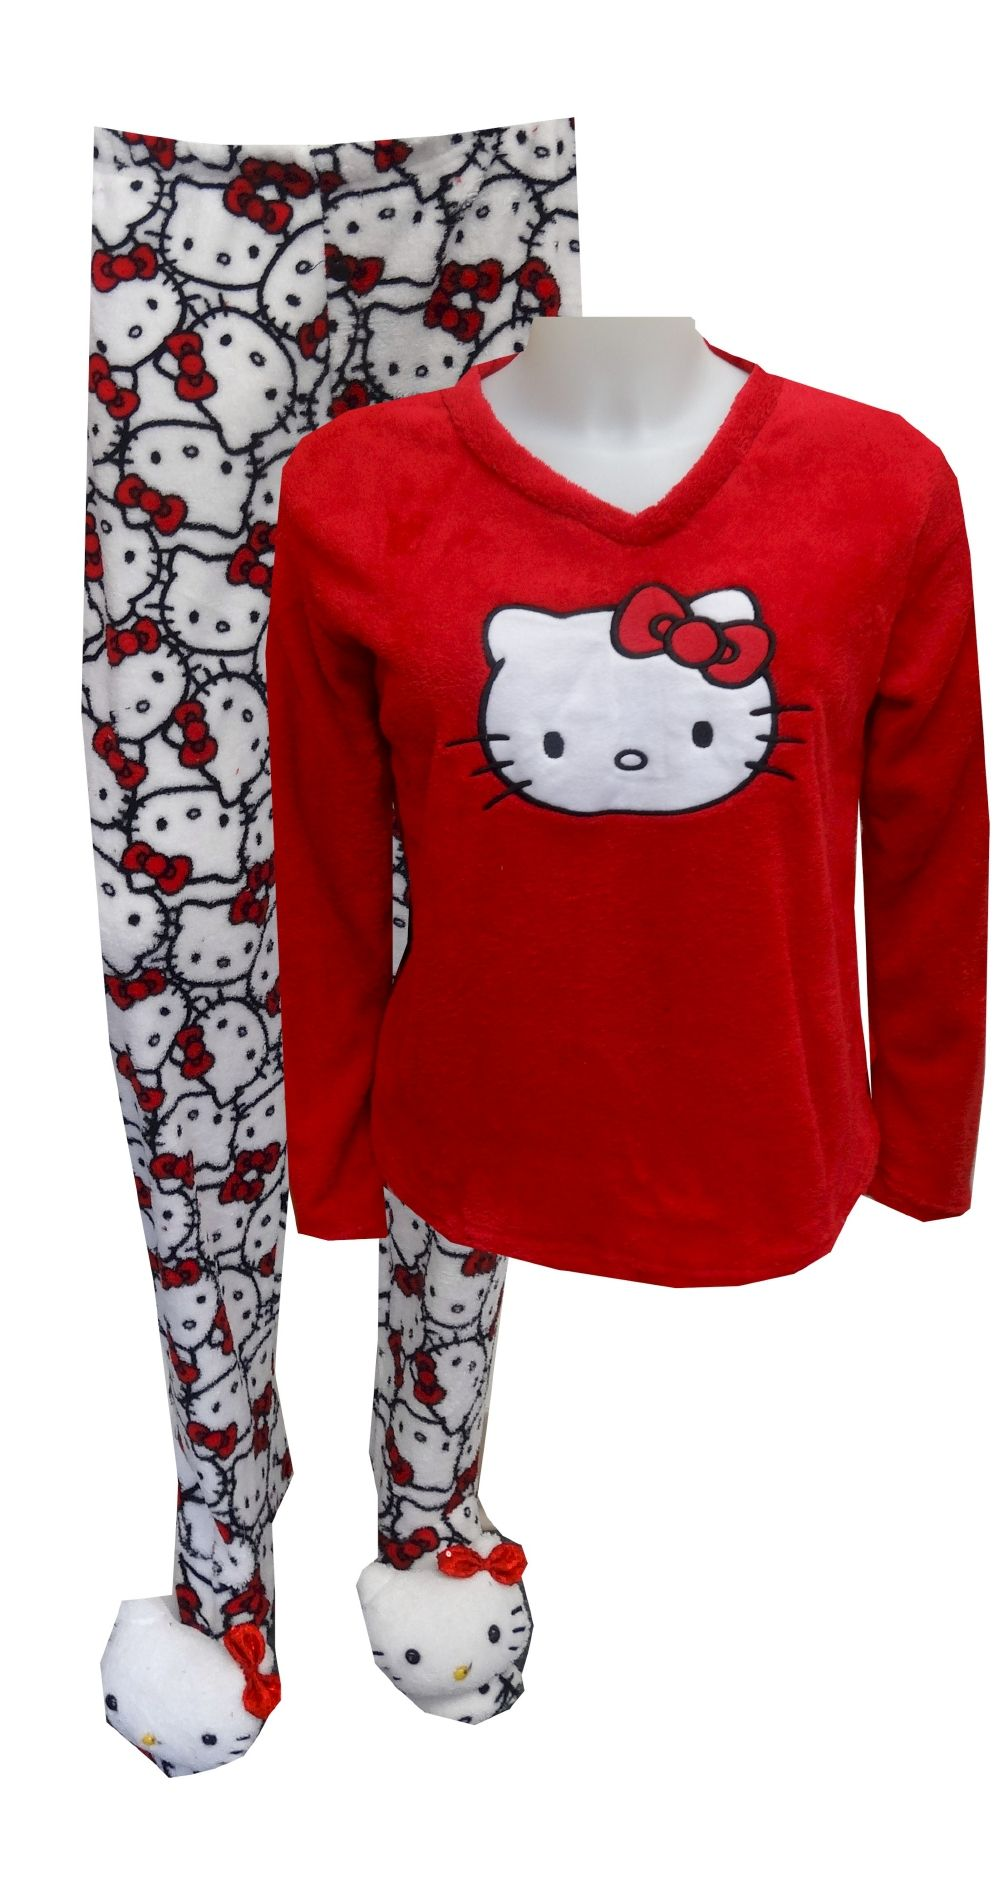 17 Best images about I Love Footed Pajamas on Pinterest | Disney ...